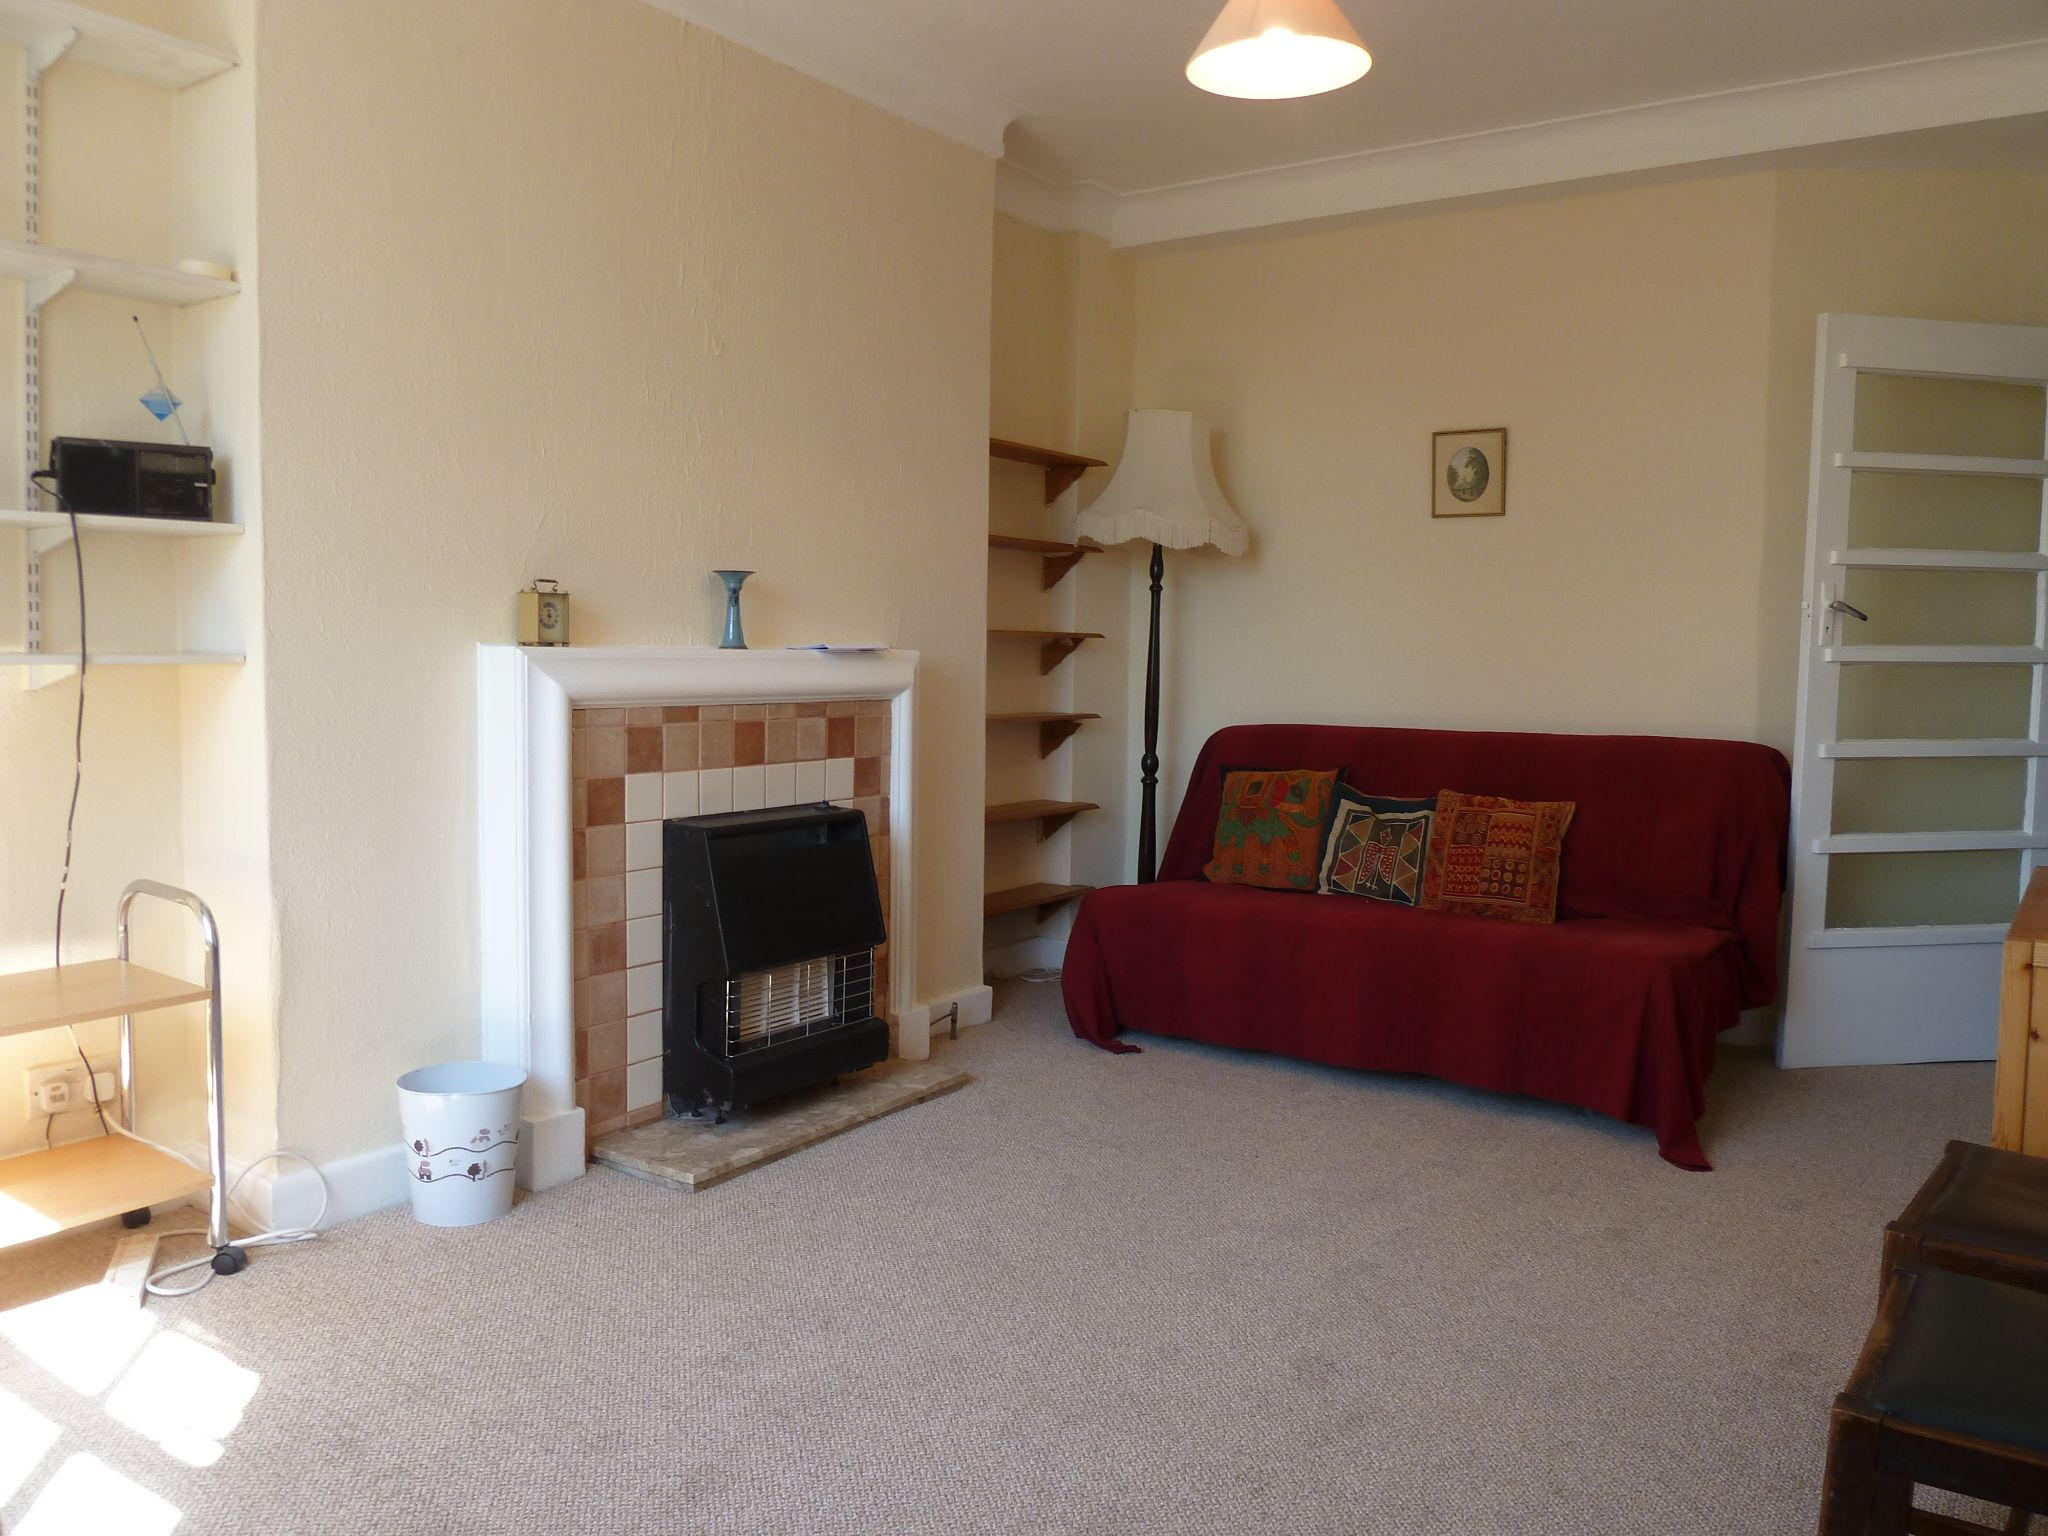 1 bedroom flat flat/apartment Under Offer in London - Separate Living Room